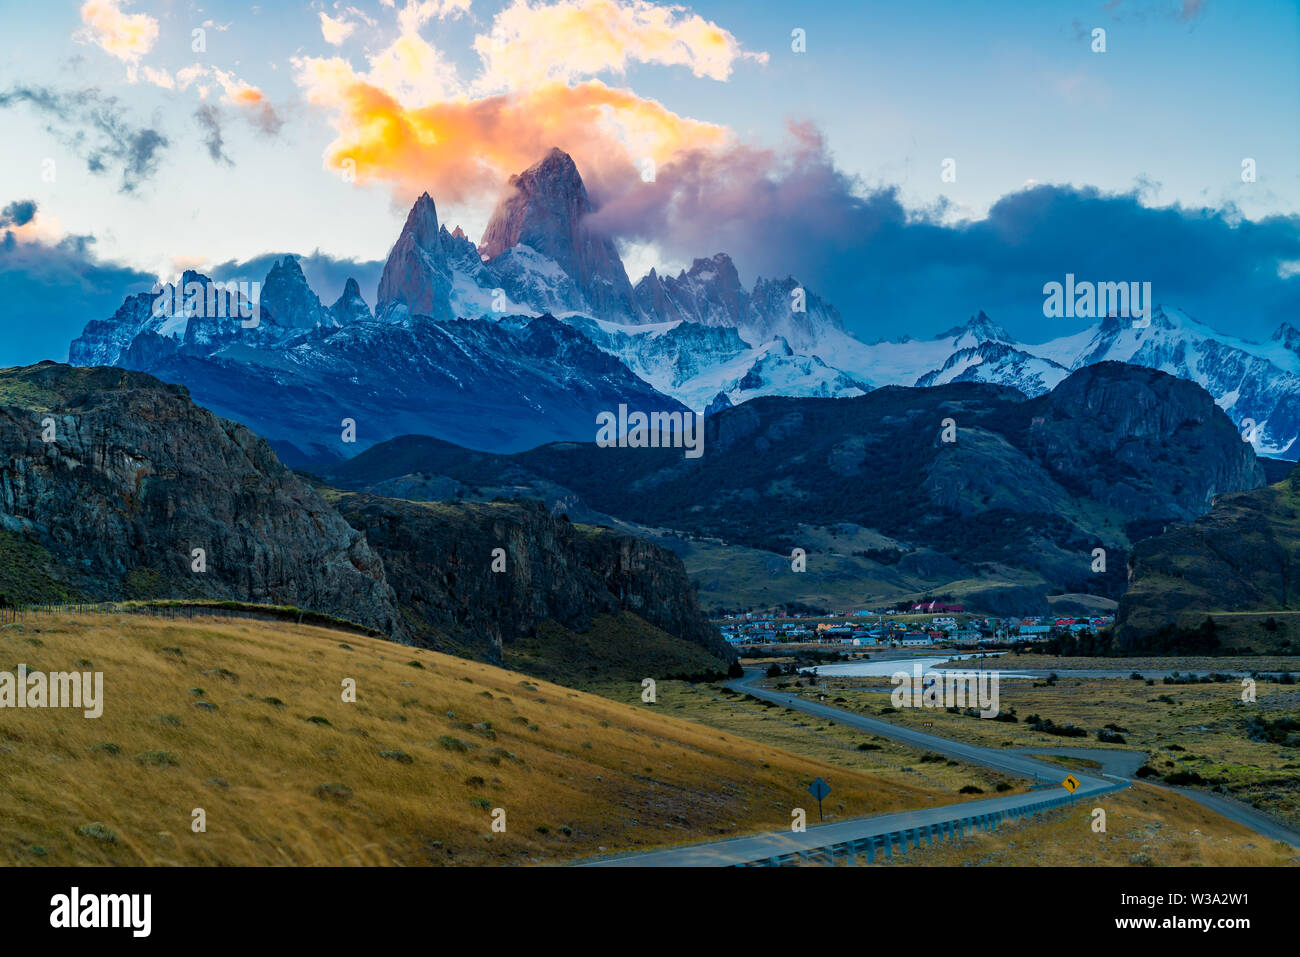 View of the famous Mount Fitz Roy or Cirro Fitz Roy at El Chalten Village in Los Glaciares National Park, Patagonia Argentina - Stock Image